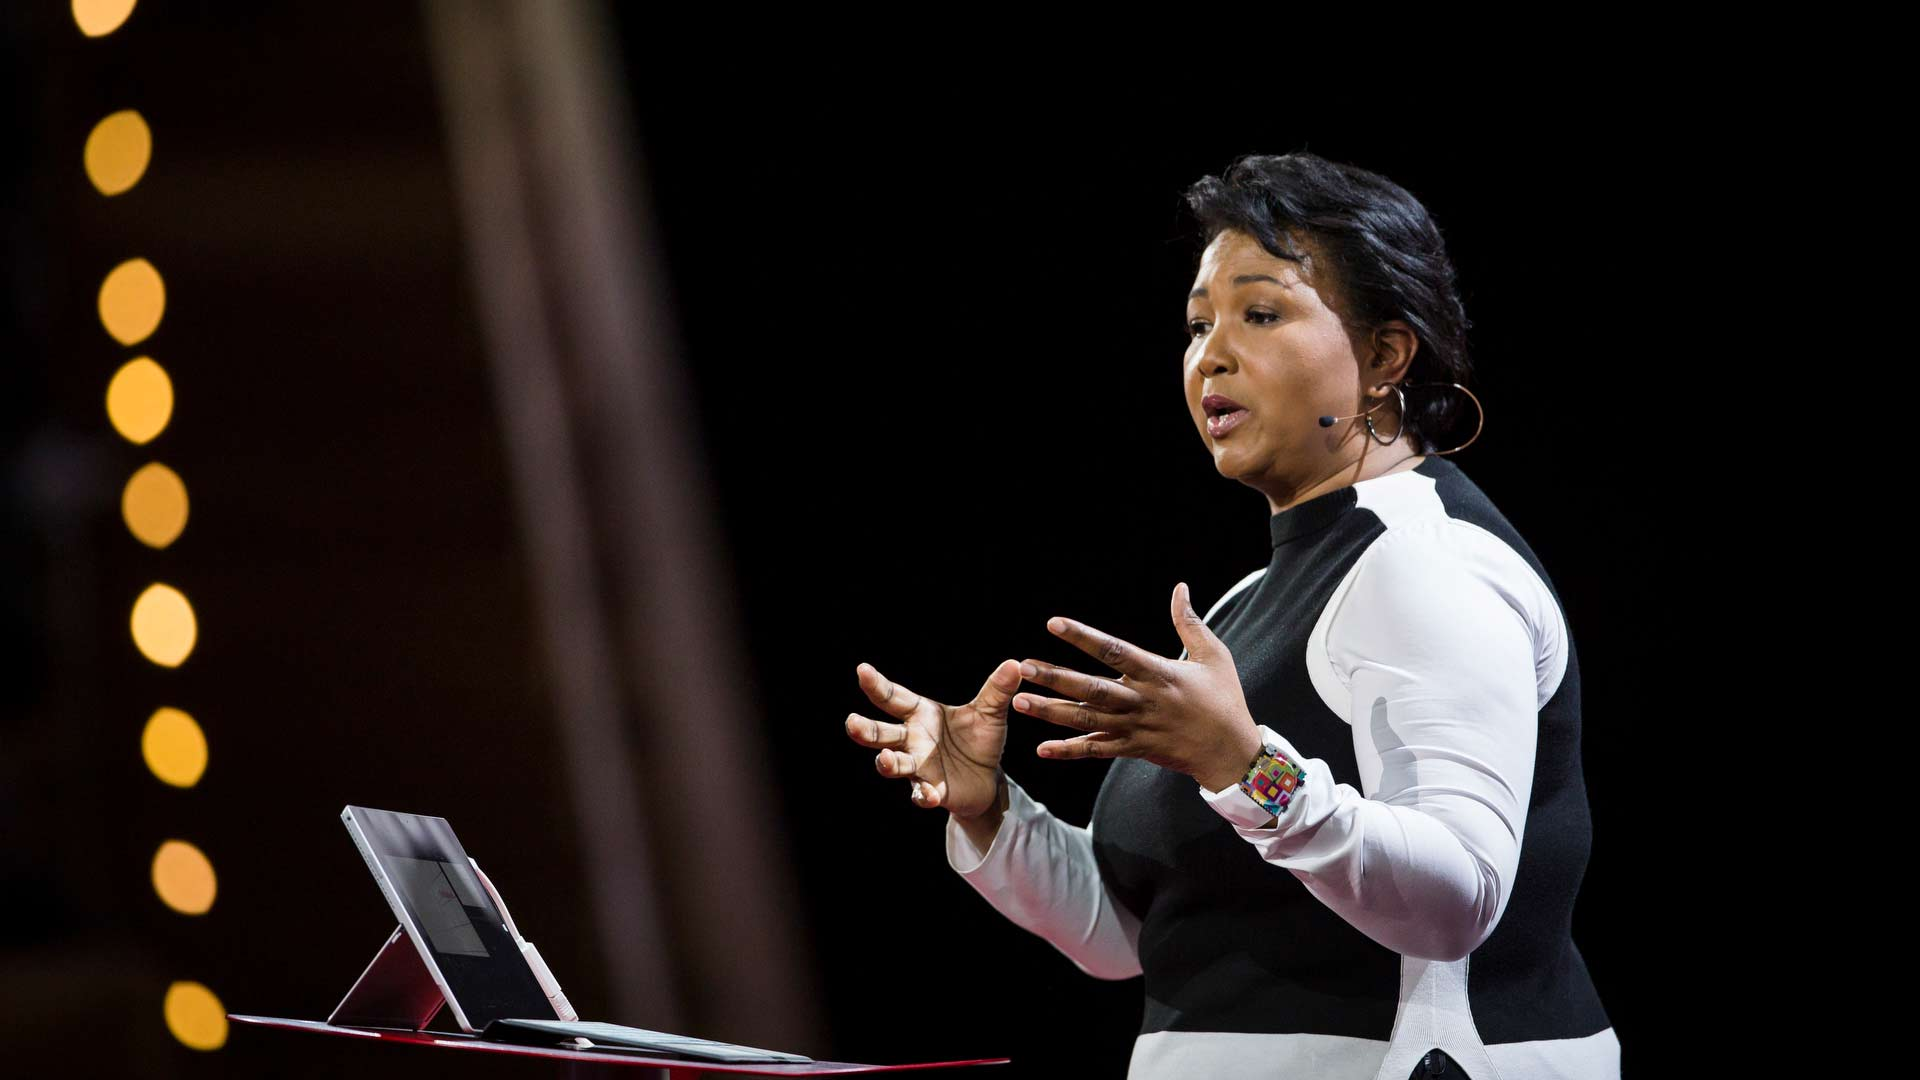 Dr. Mae Jemison speaking at TED2016.